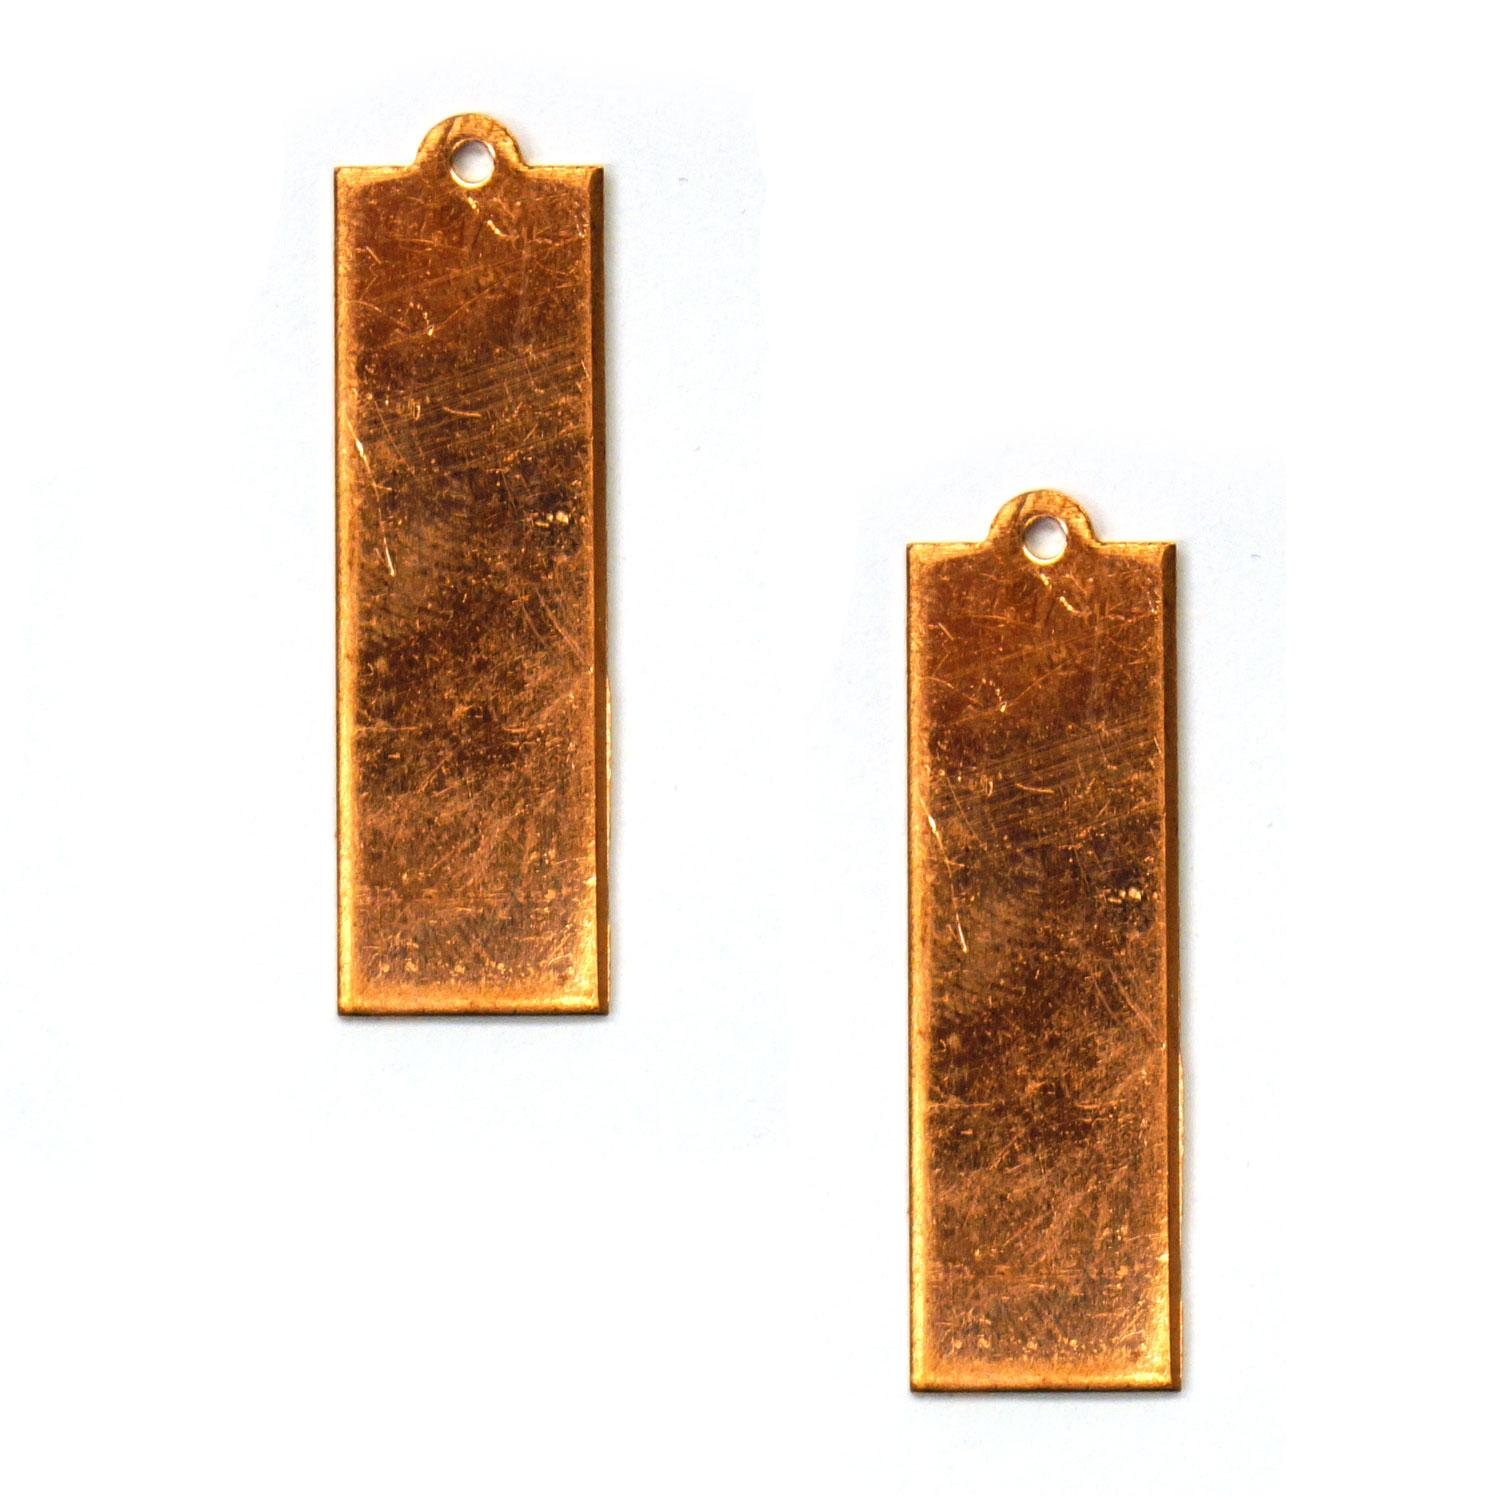 Slim Rectangle Copper Shape with Tab - 2 Pack